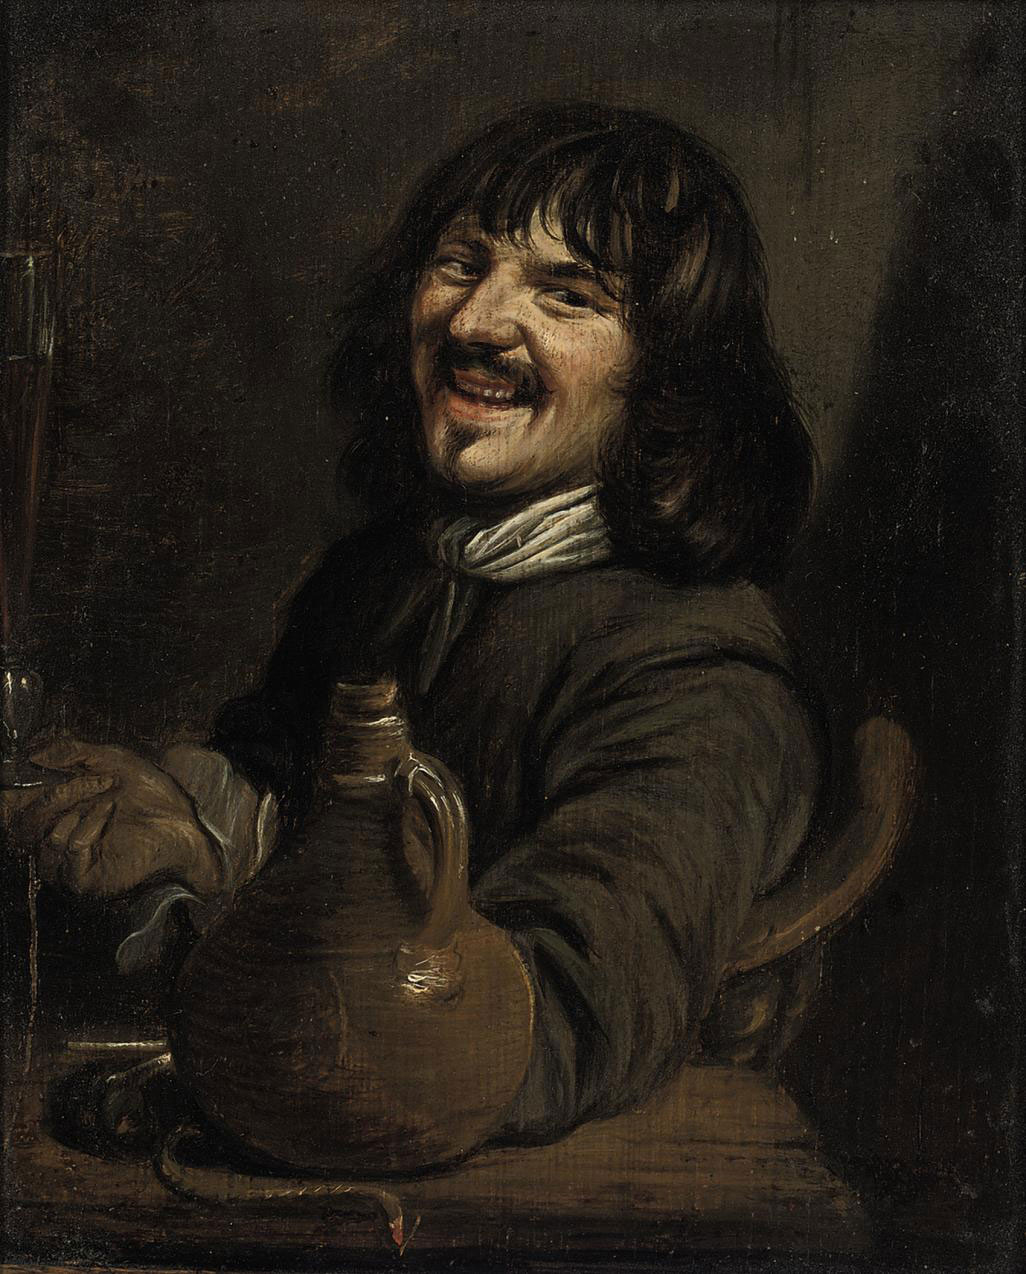 A man seated at a table drinking